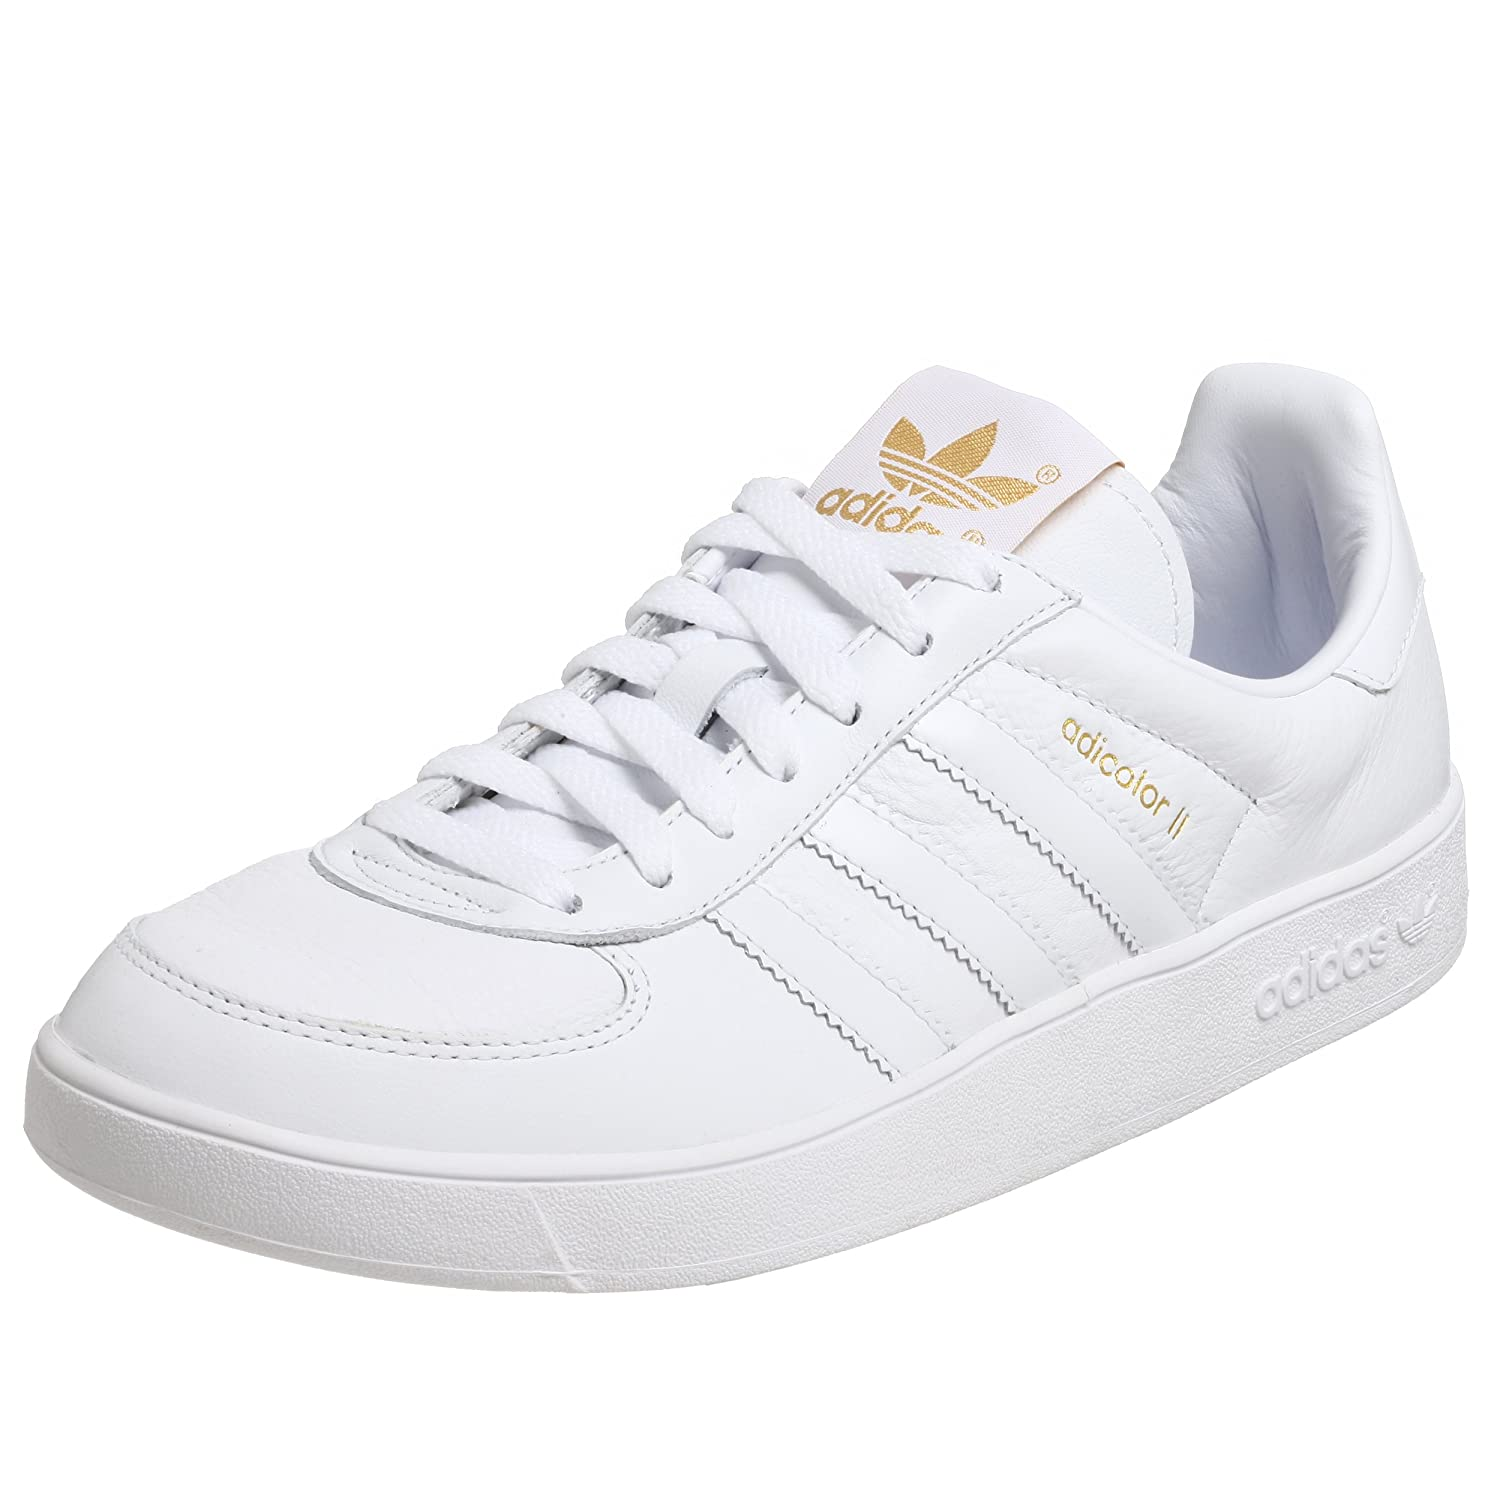 adidas adicolor shoes Off 51% 2op.co.il